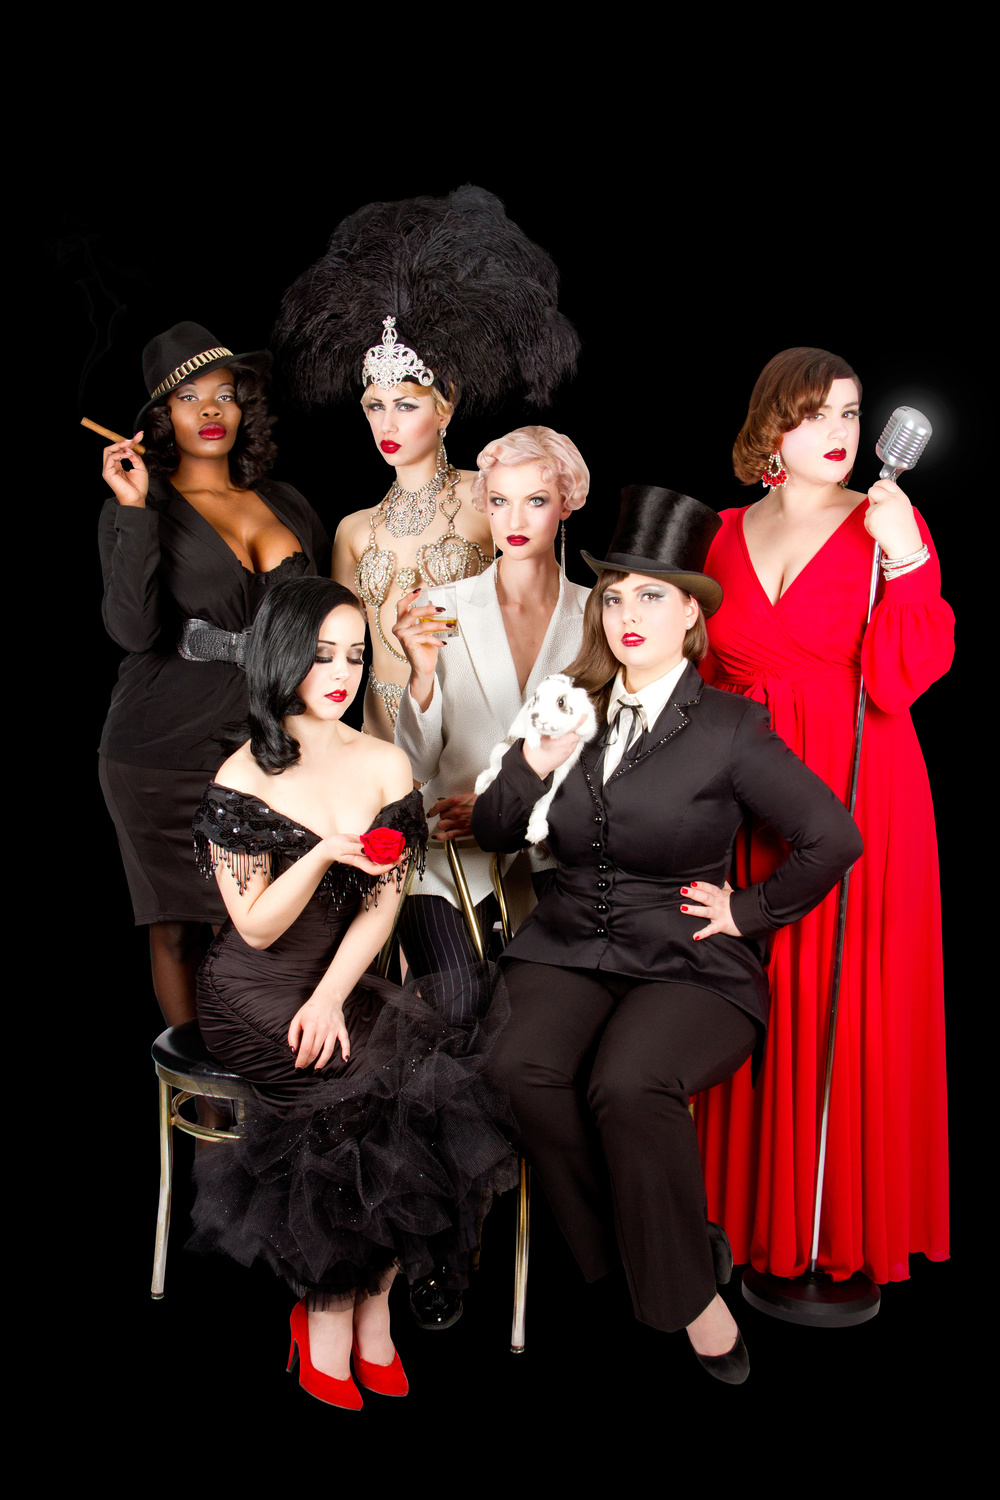 La troupe Cabaret Capone, Photo par Frank Lam